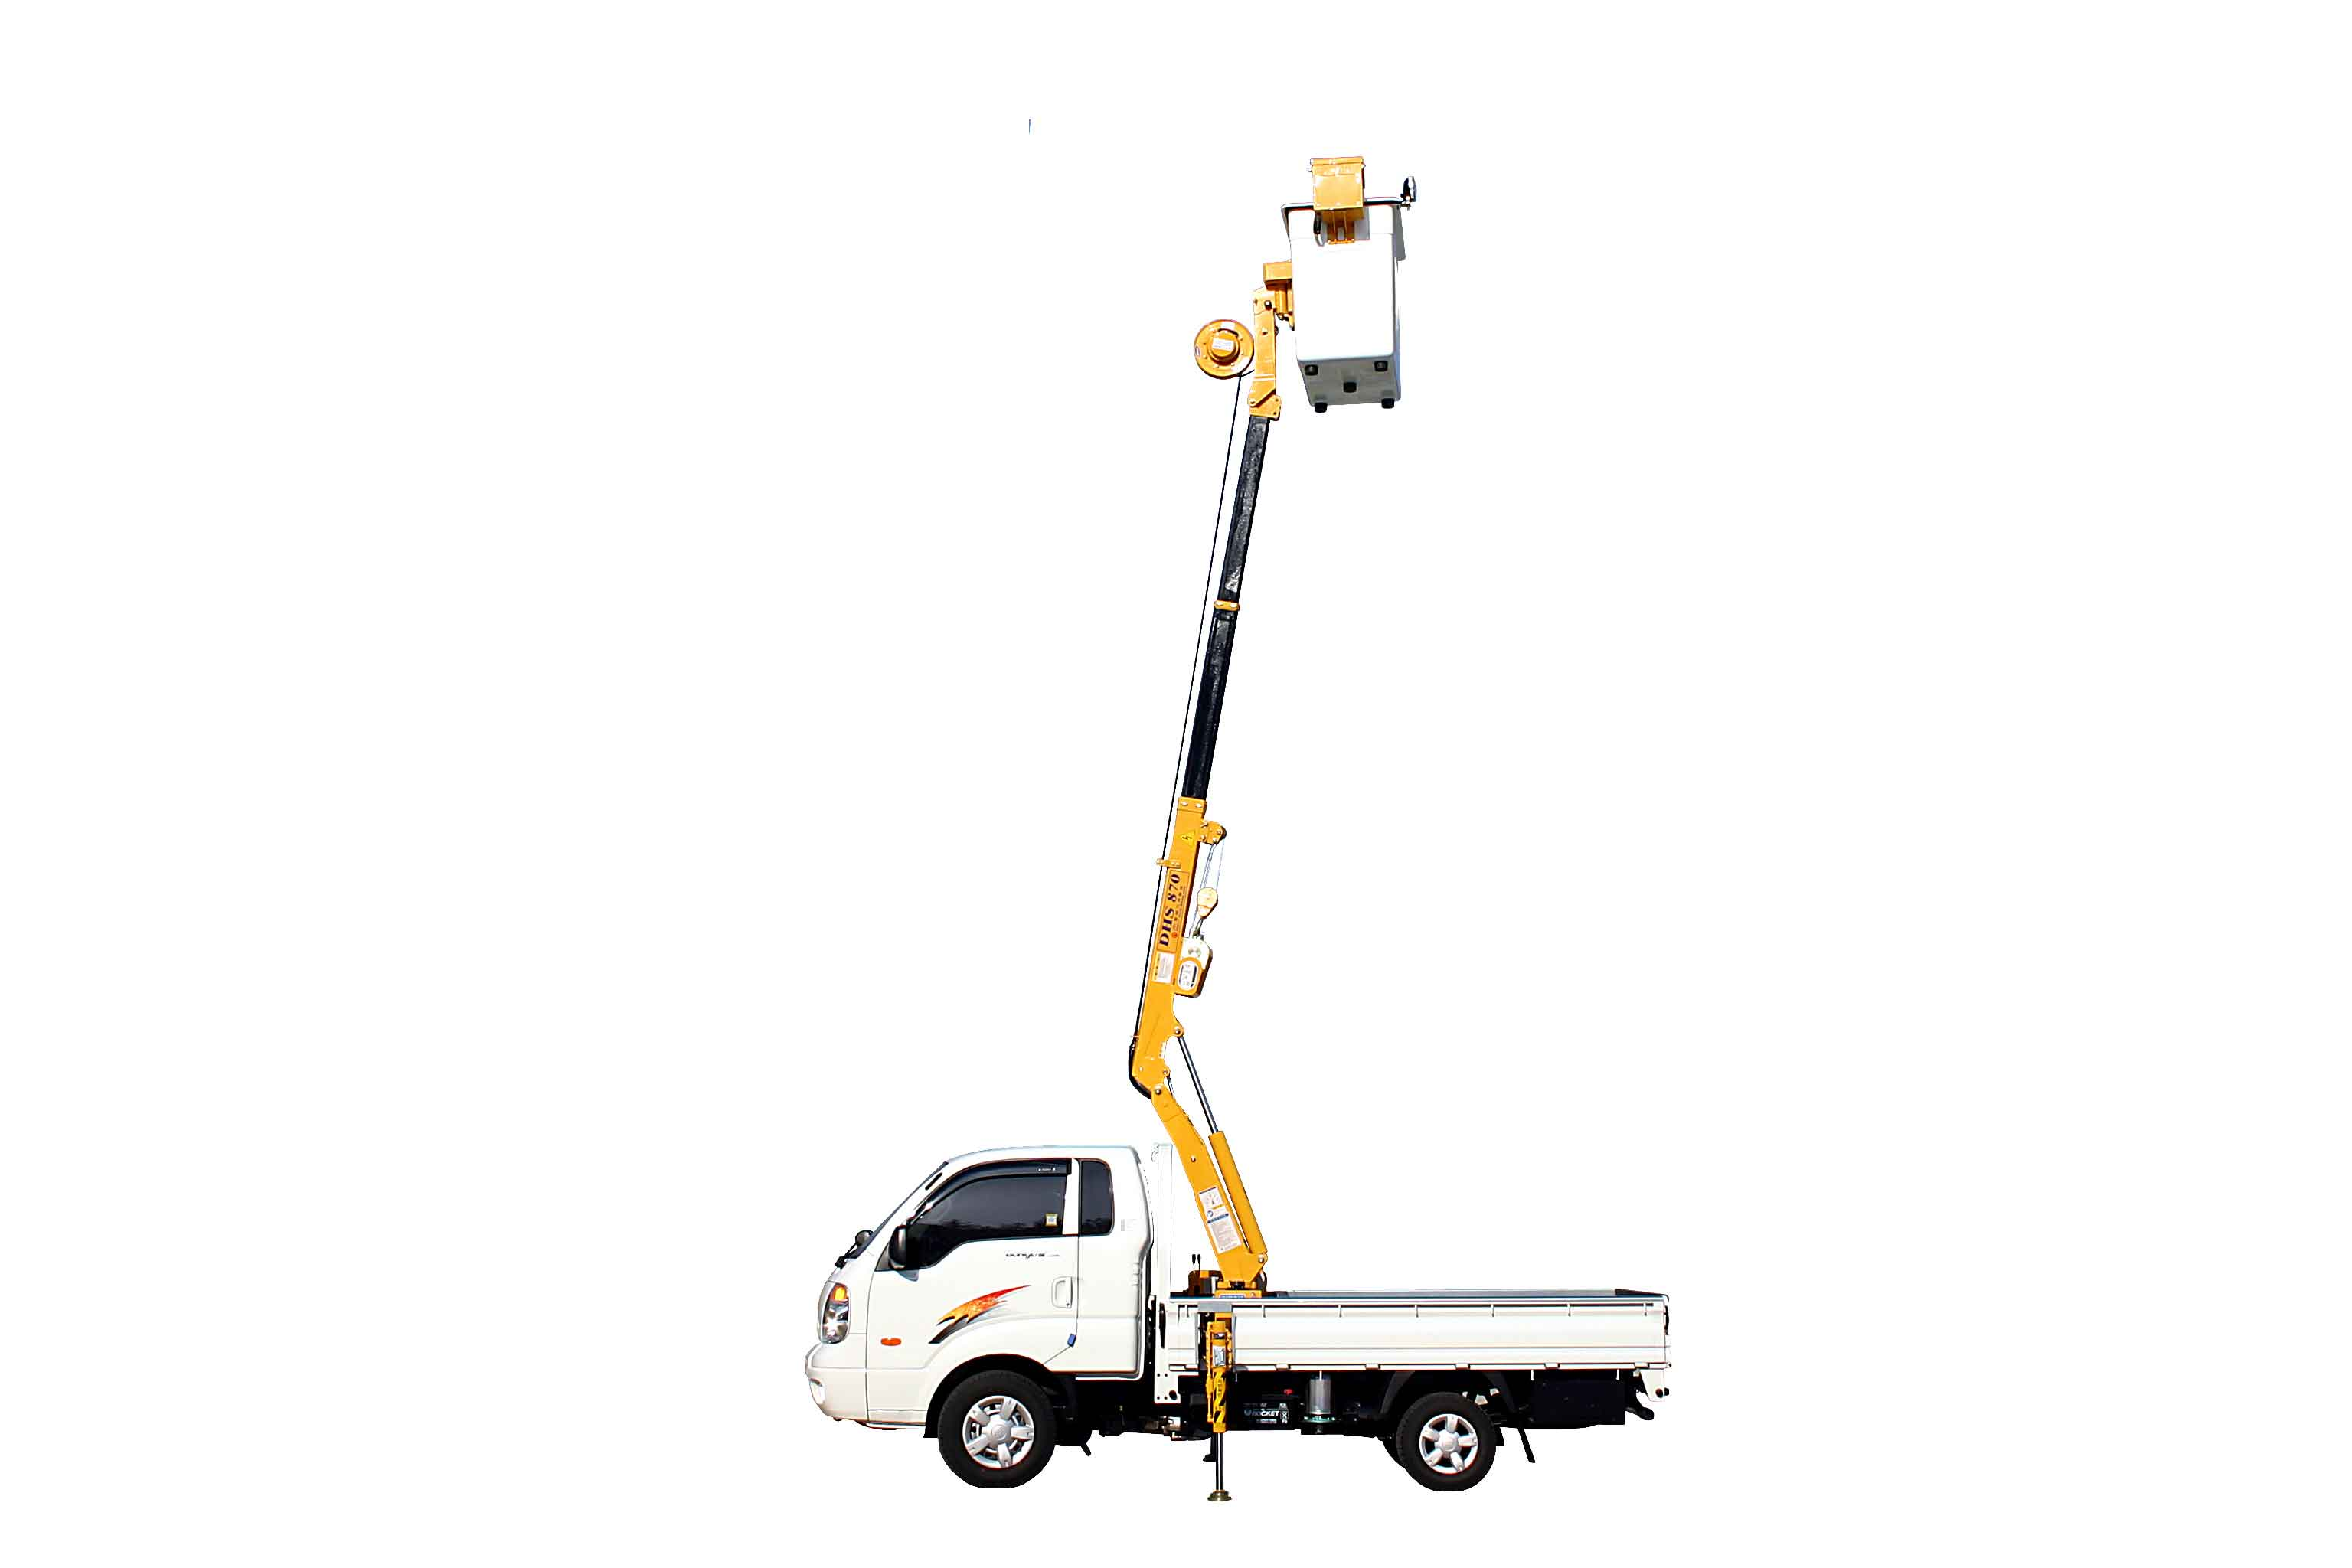 Truck Mounted Crane Dhs 870 Id Product Details